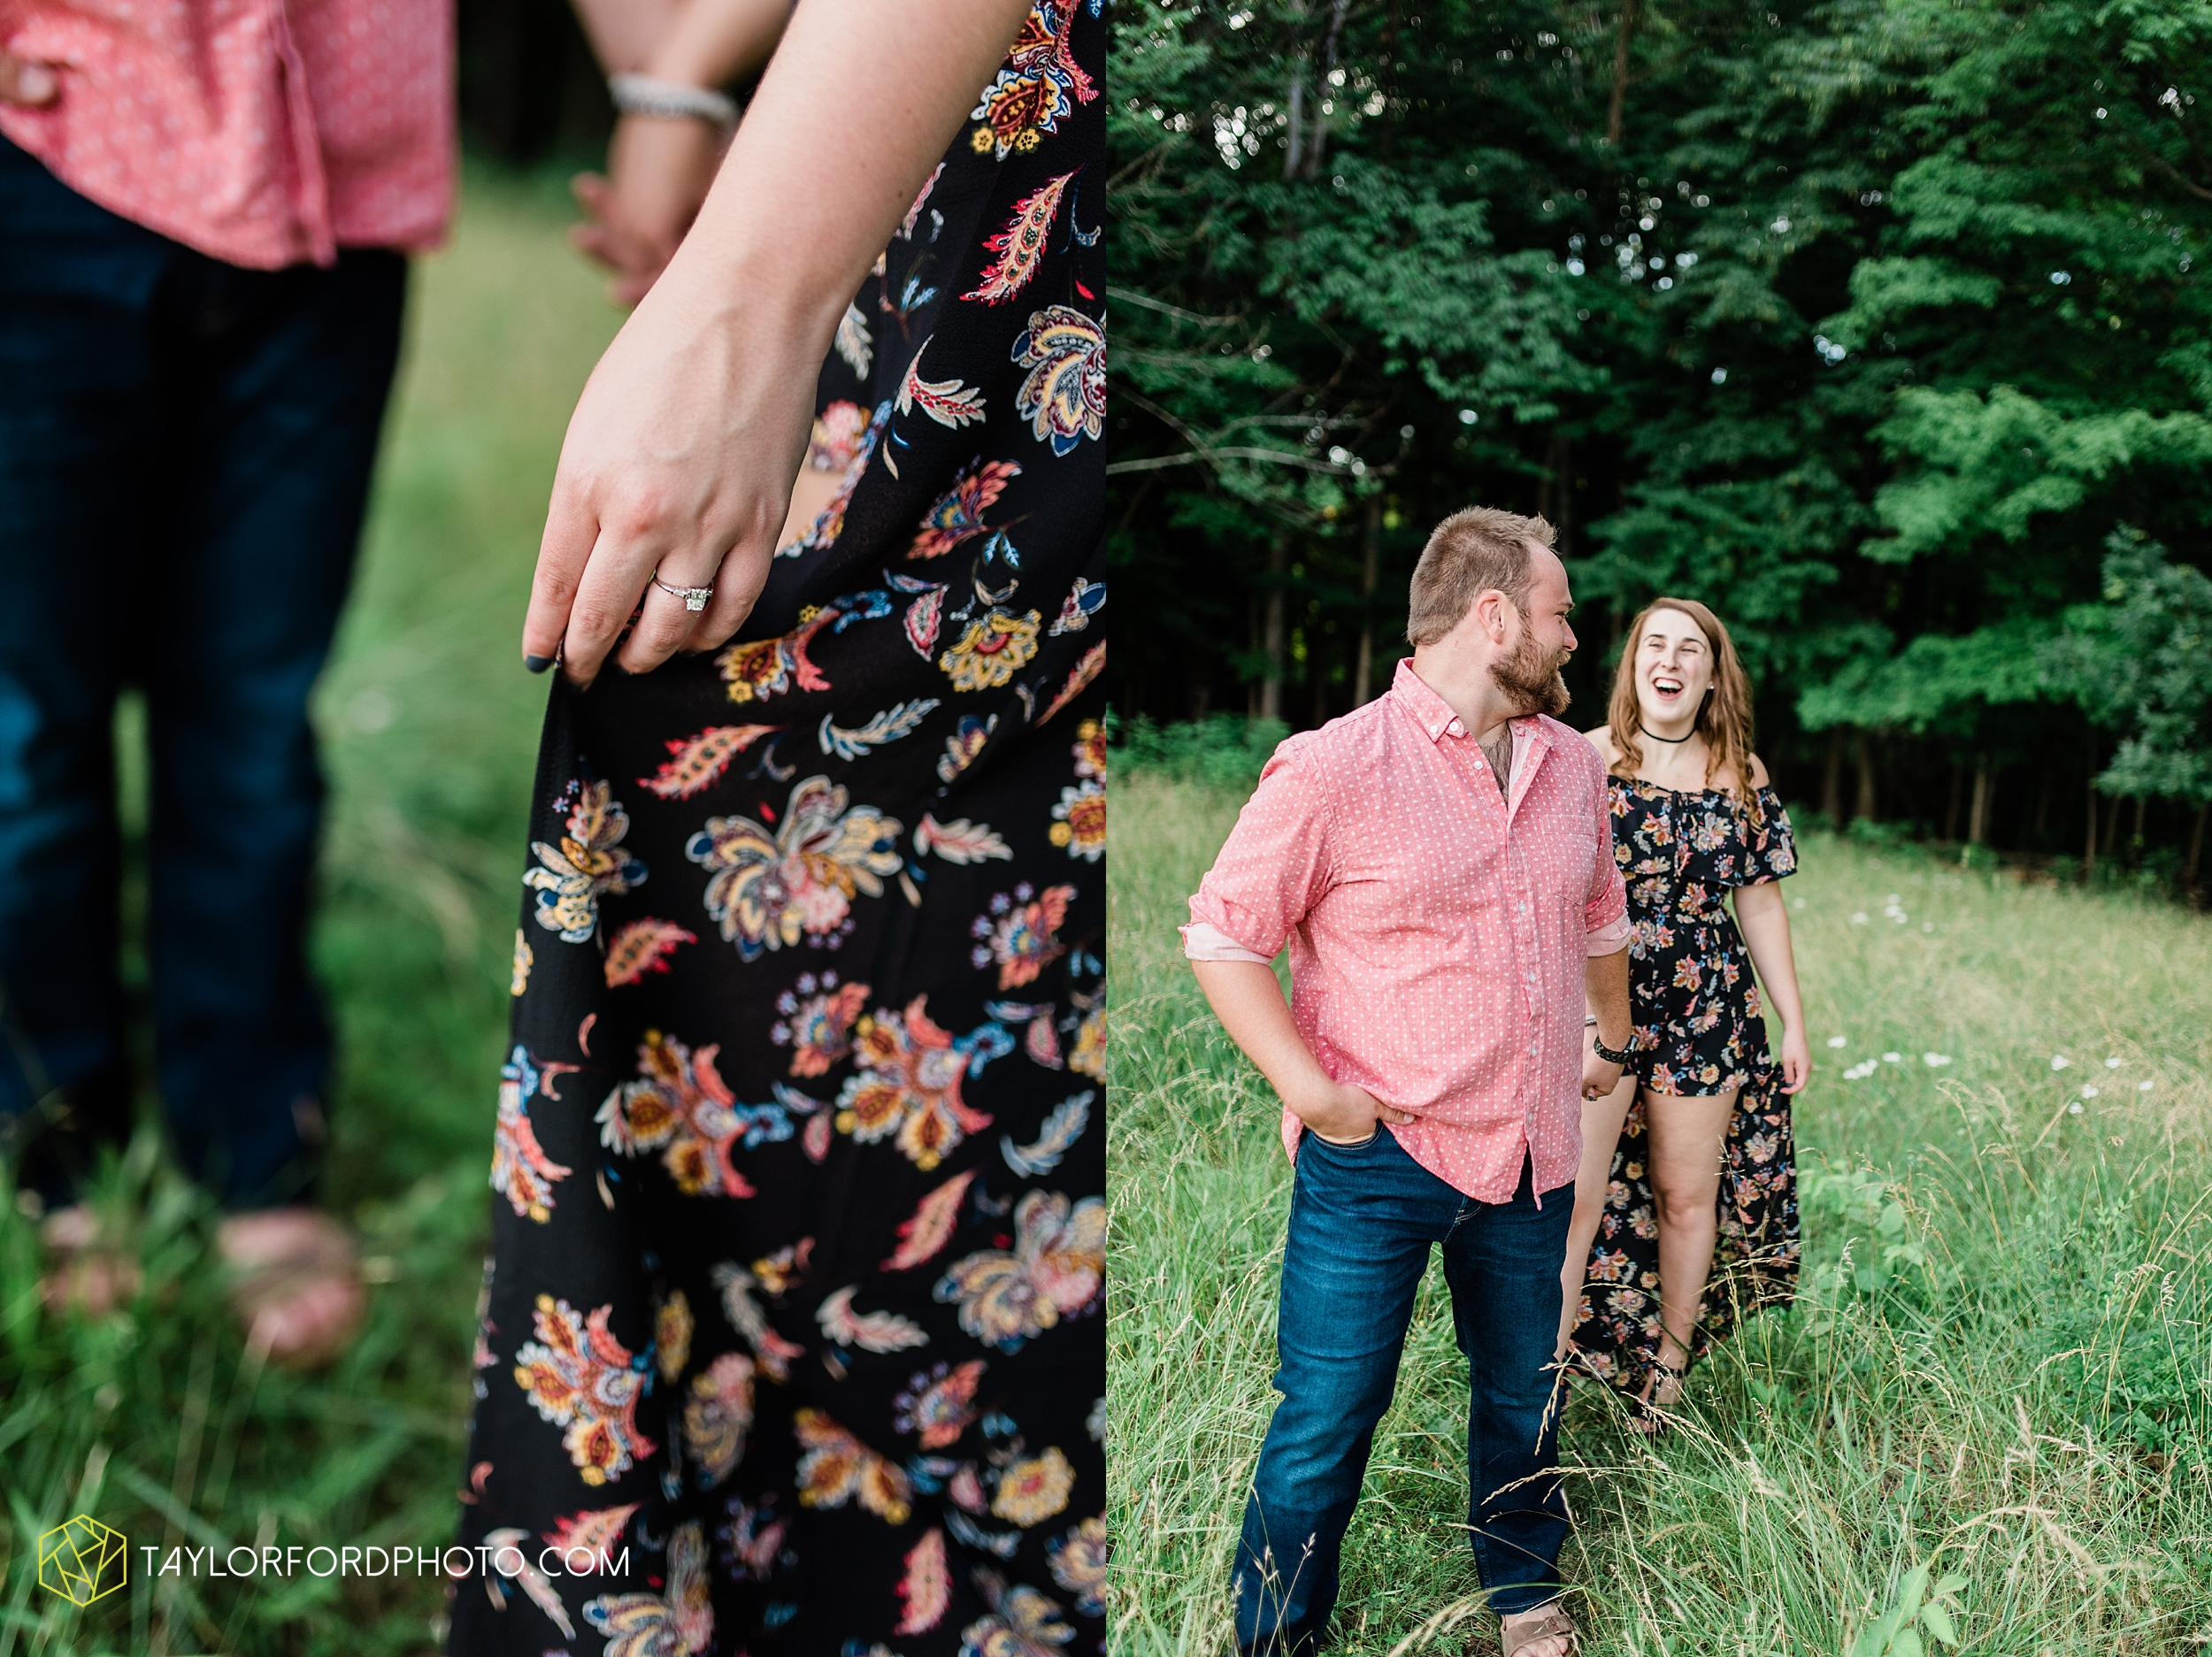 chelsey-jackson-young-downtown-fort-wayne-indiana-the-halls-deck-engagement-wedding-photographer-Taylor-Ford-Photography_8223.jpg